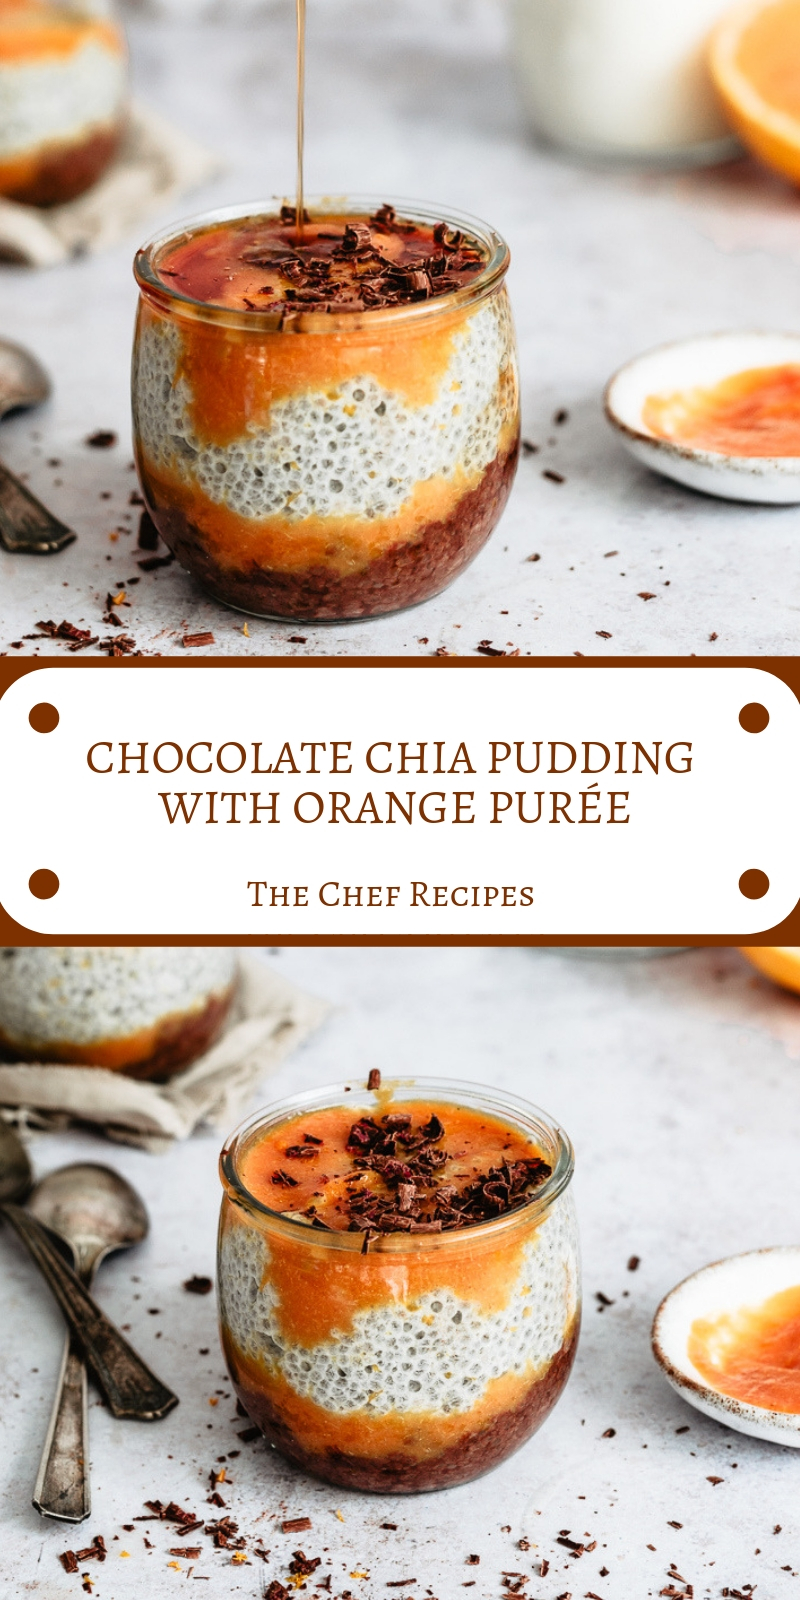 CHOCOLATE CHIA PUDDING WITH ORANGE PUREE